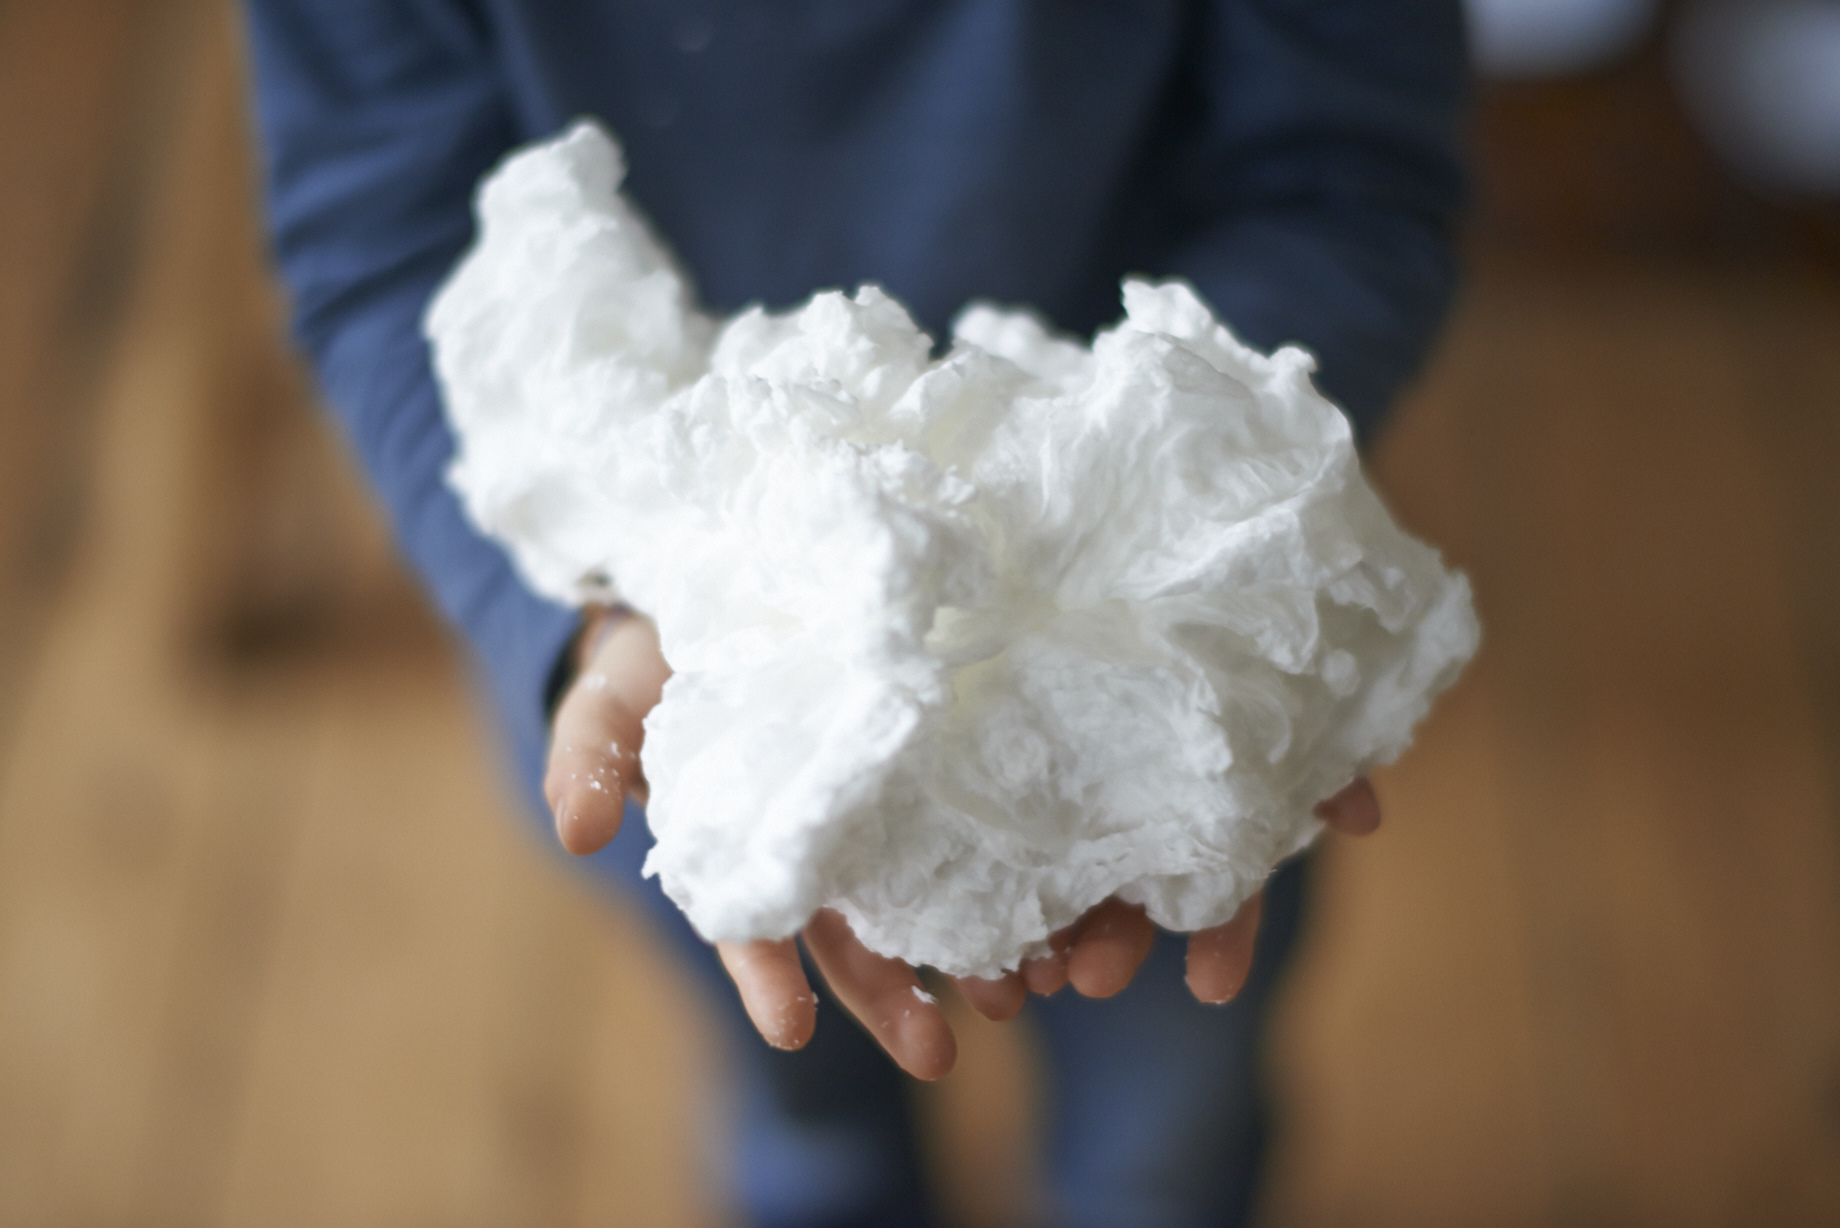 MAKE YOUR OWN SOAP CLOUDS WITH A MICROWAVE - LADYLANDLADYLAND